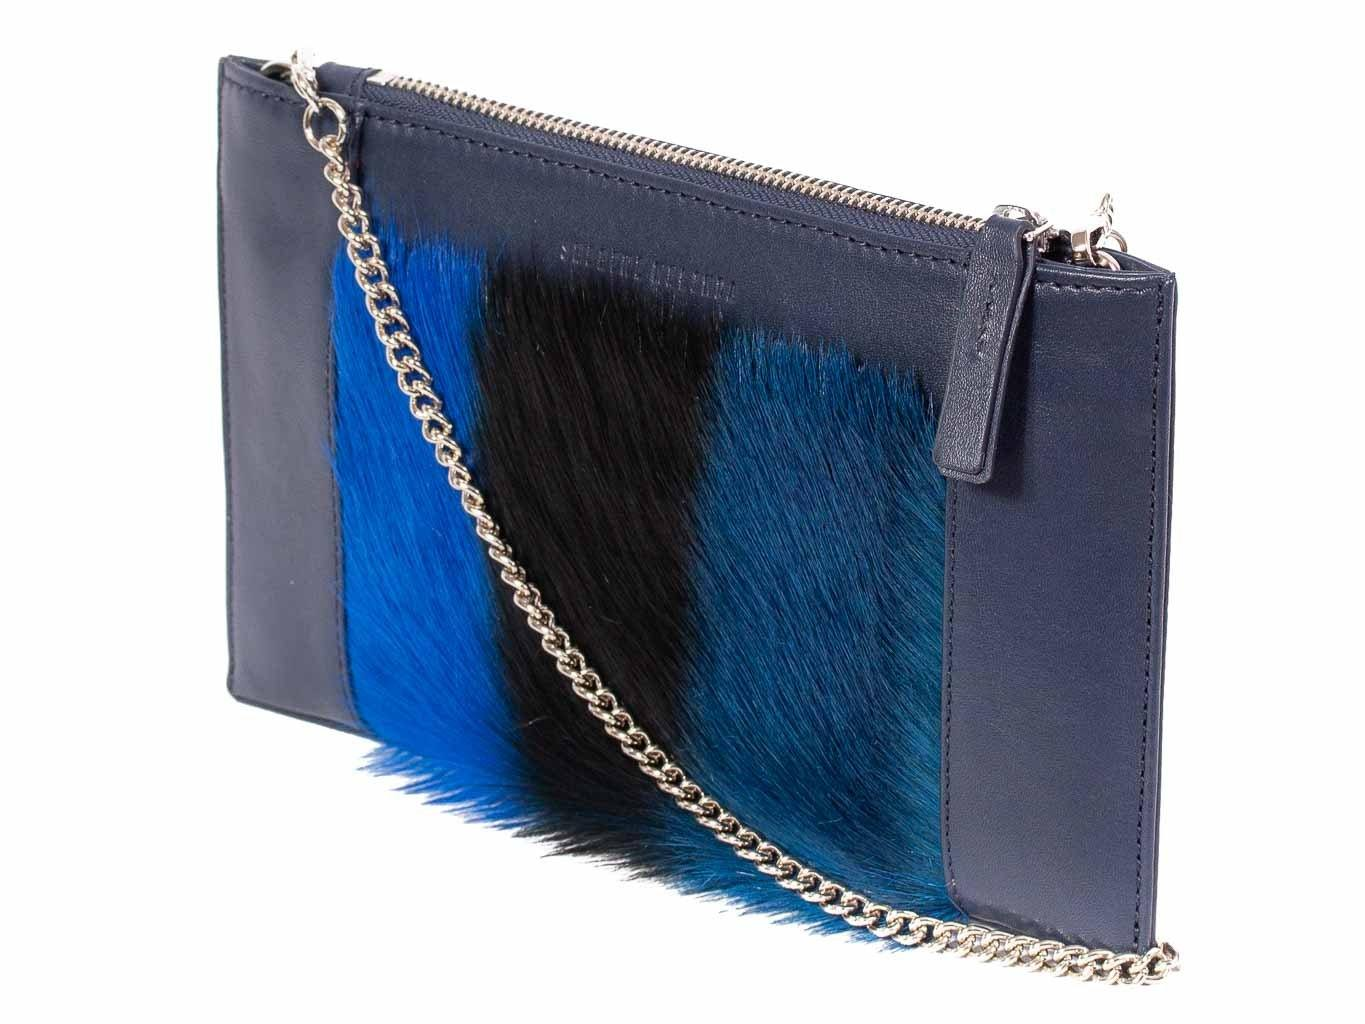 Clutch Springbok Handbag in Navy Blue with a stripe feature by Sherene Melinda front strap